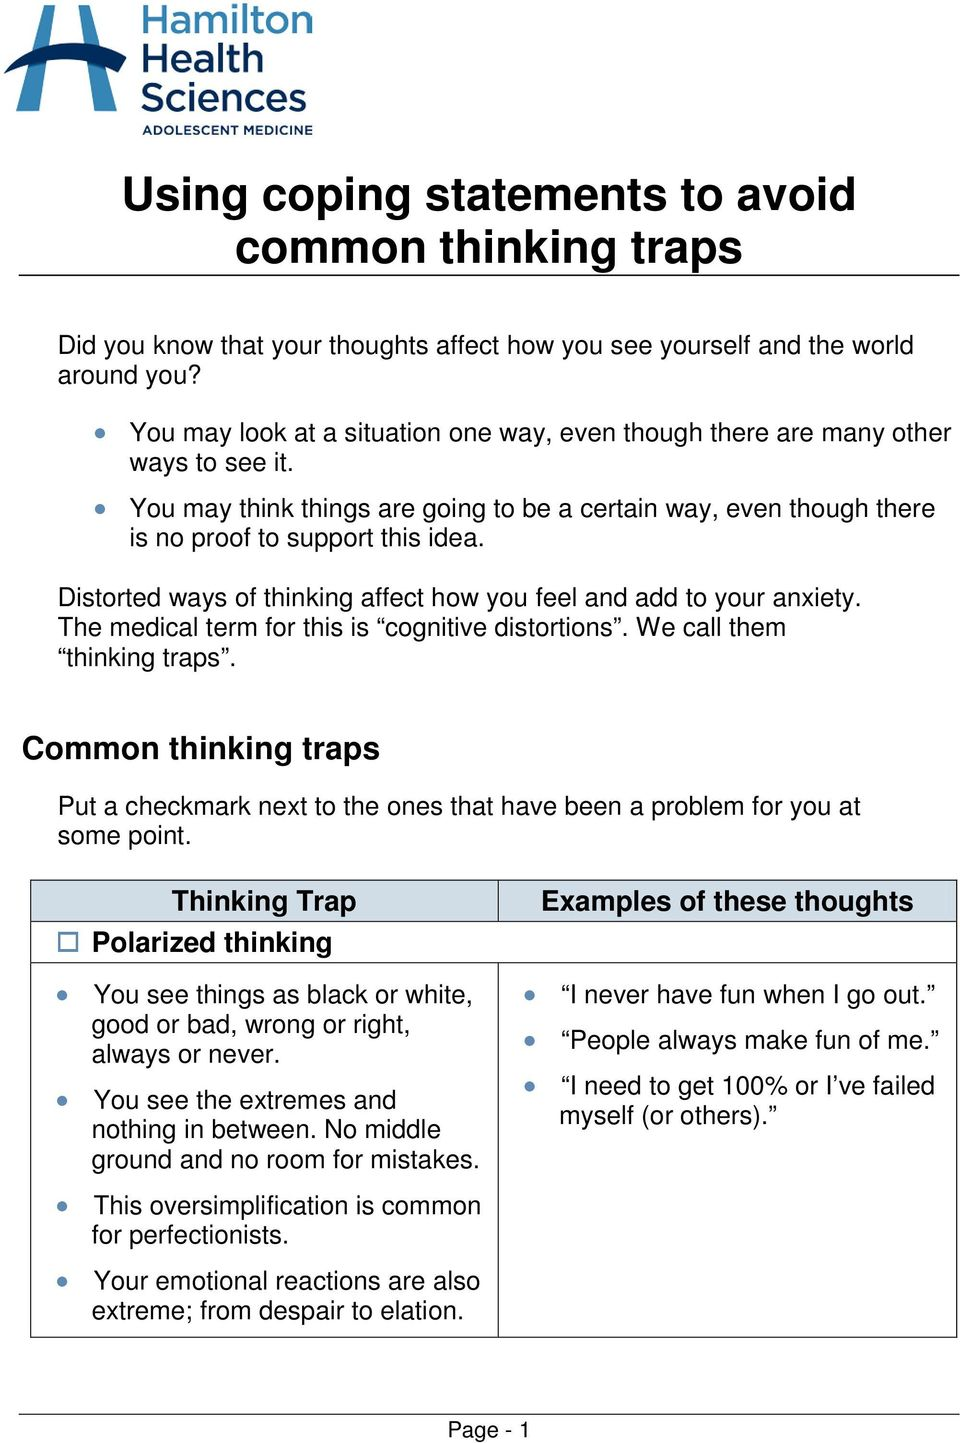 Distorted ways of thinking affect how you feel and add to your anxiety. The medical term for this is cognitive distortions. We call them thinking traps.